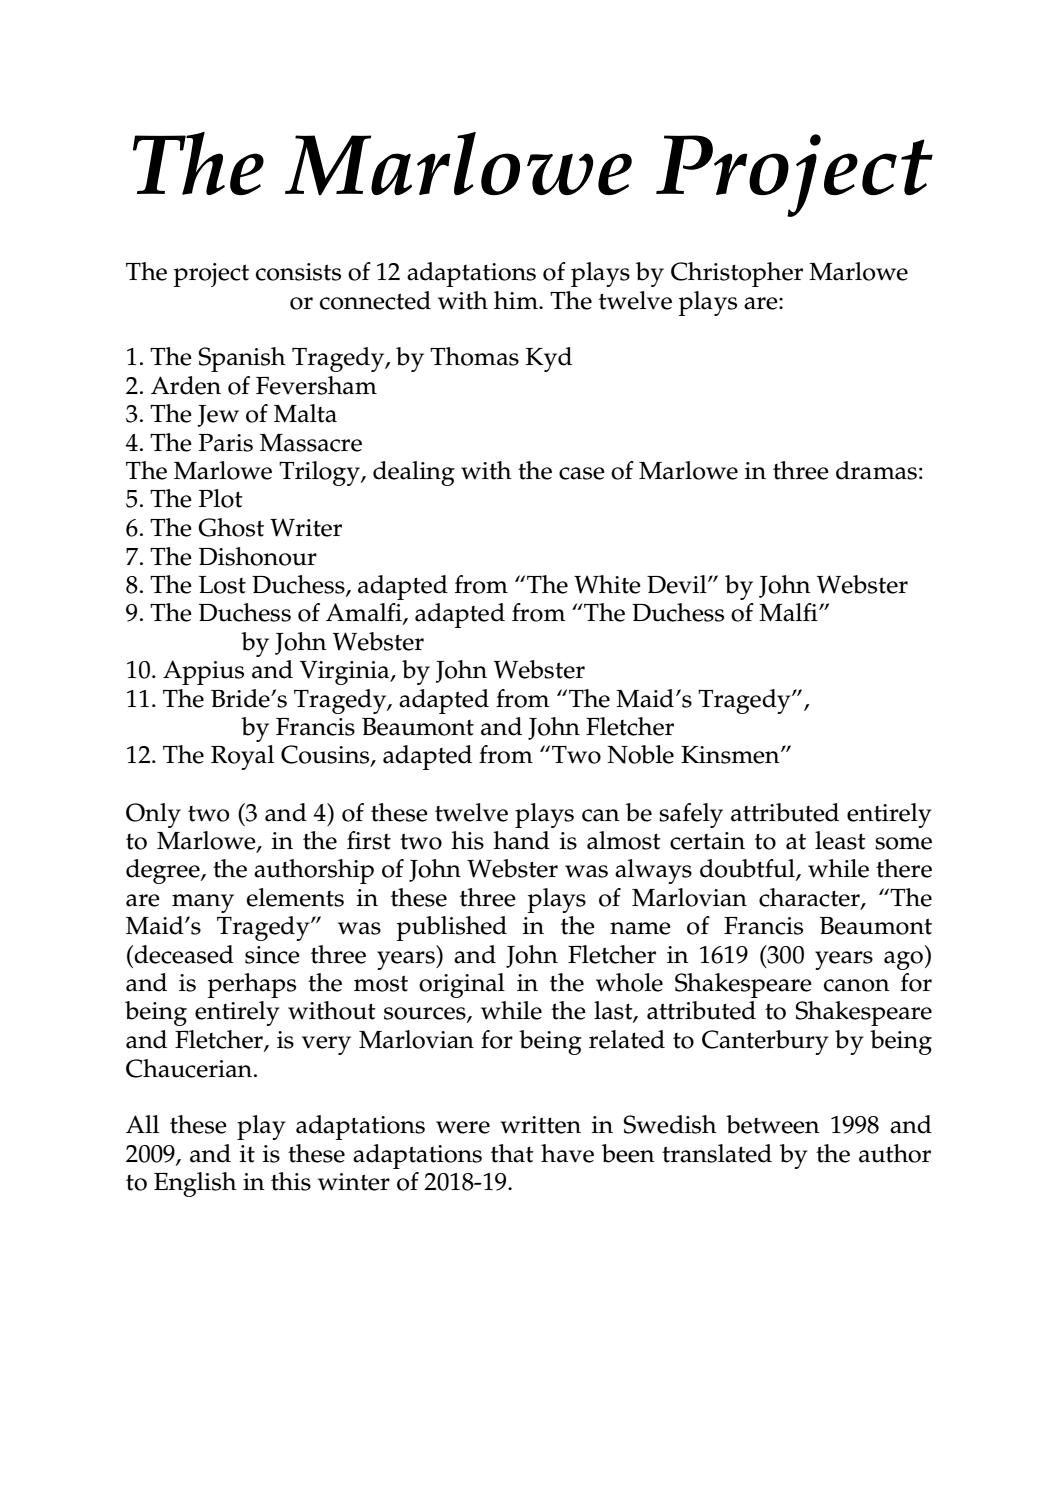 Pardon Me While I Rant About Dismal >> The Marlowe Project By Christian Lanciai Issuu